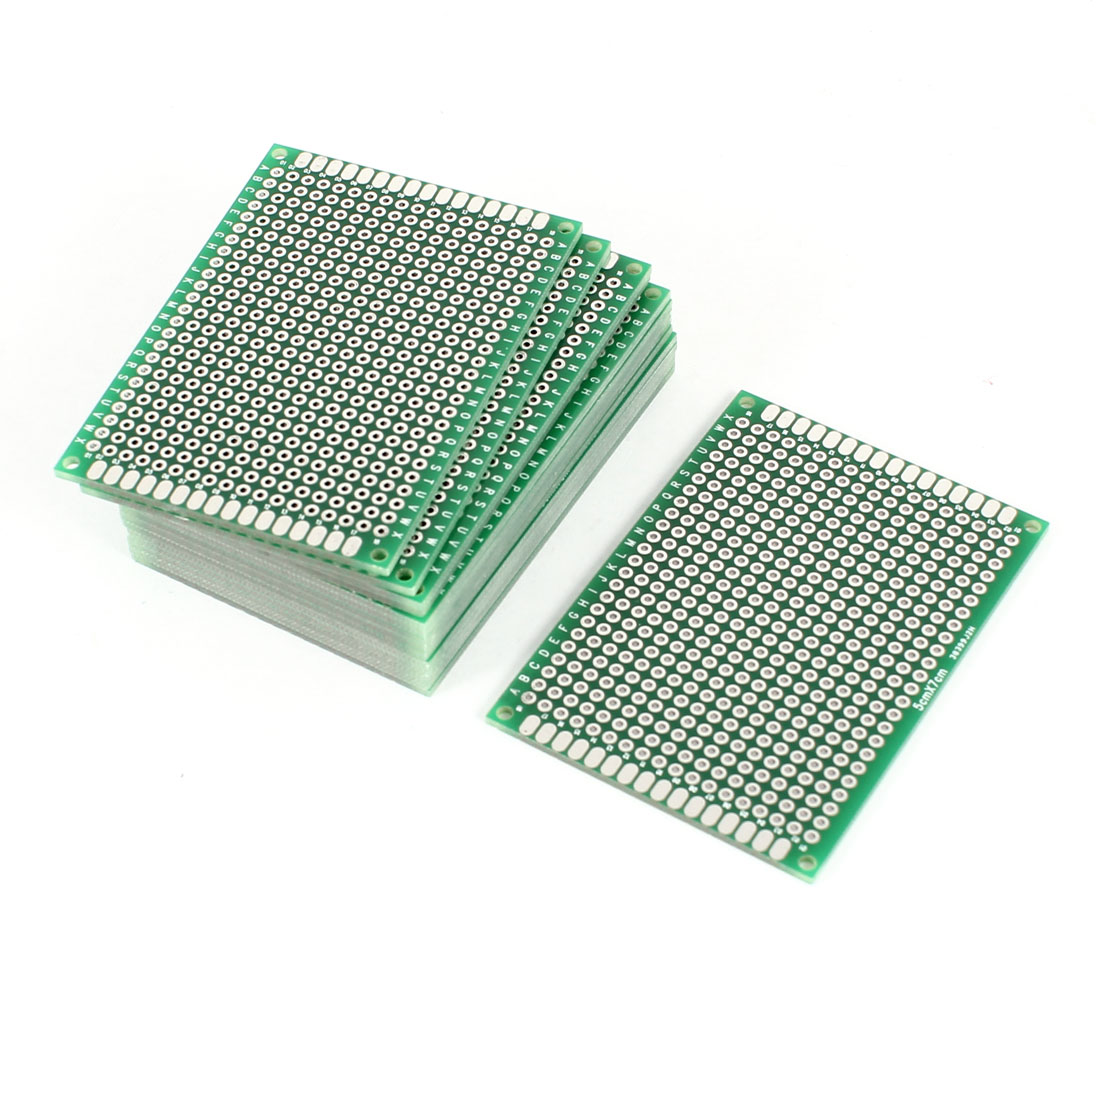 15 PCS 5cm x 7cm Double Sides Prototype Paper Tinned Universal PCB Print Circuit Board for DIY